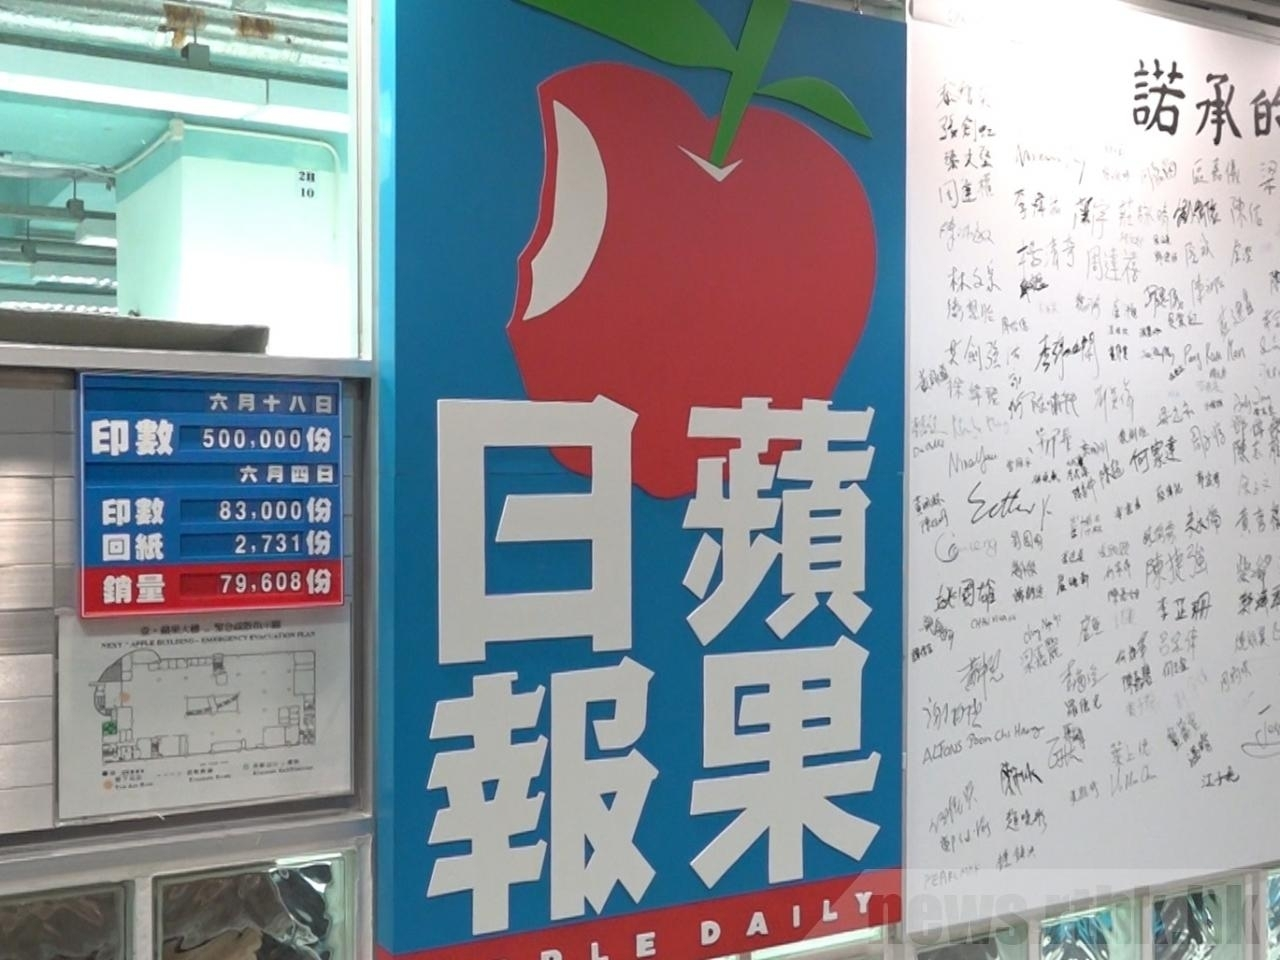 It's understood that Cheung Kim-hung and Ryan Law will be brought before a court on Saturday. Photo: RTHK